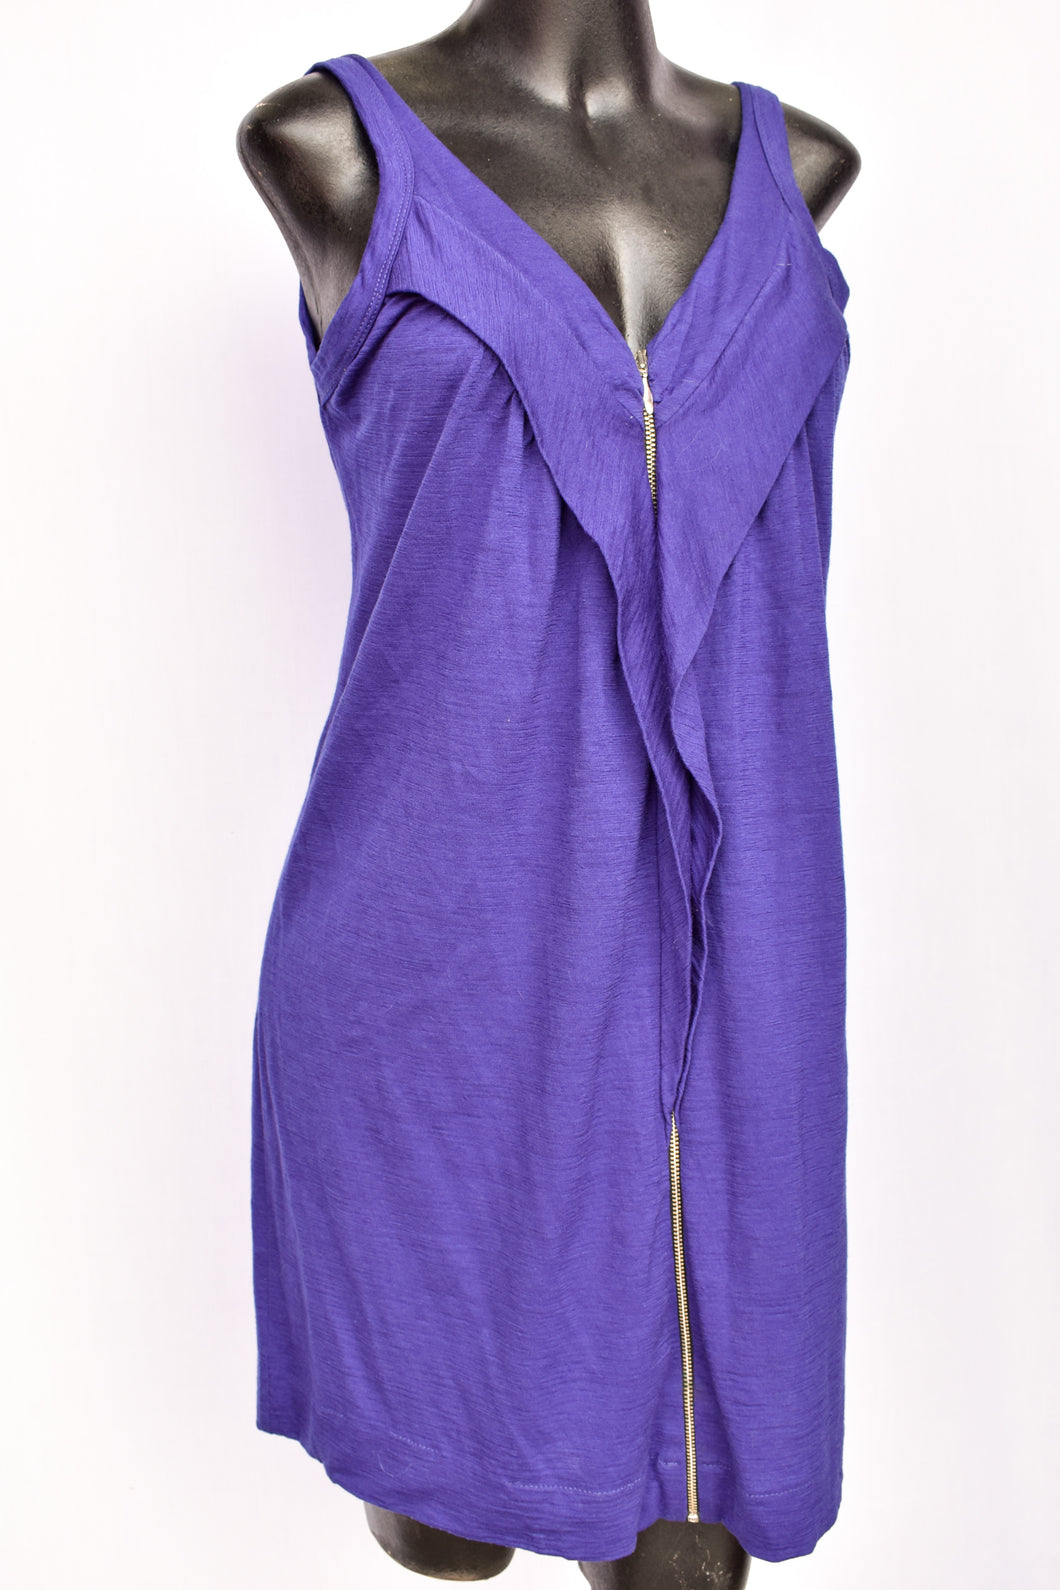 Purple sleeveless merino dress, size M